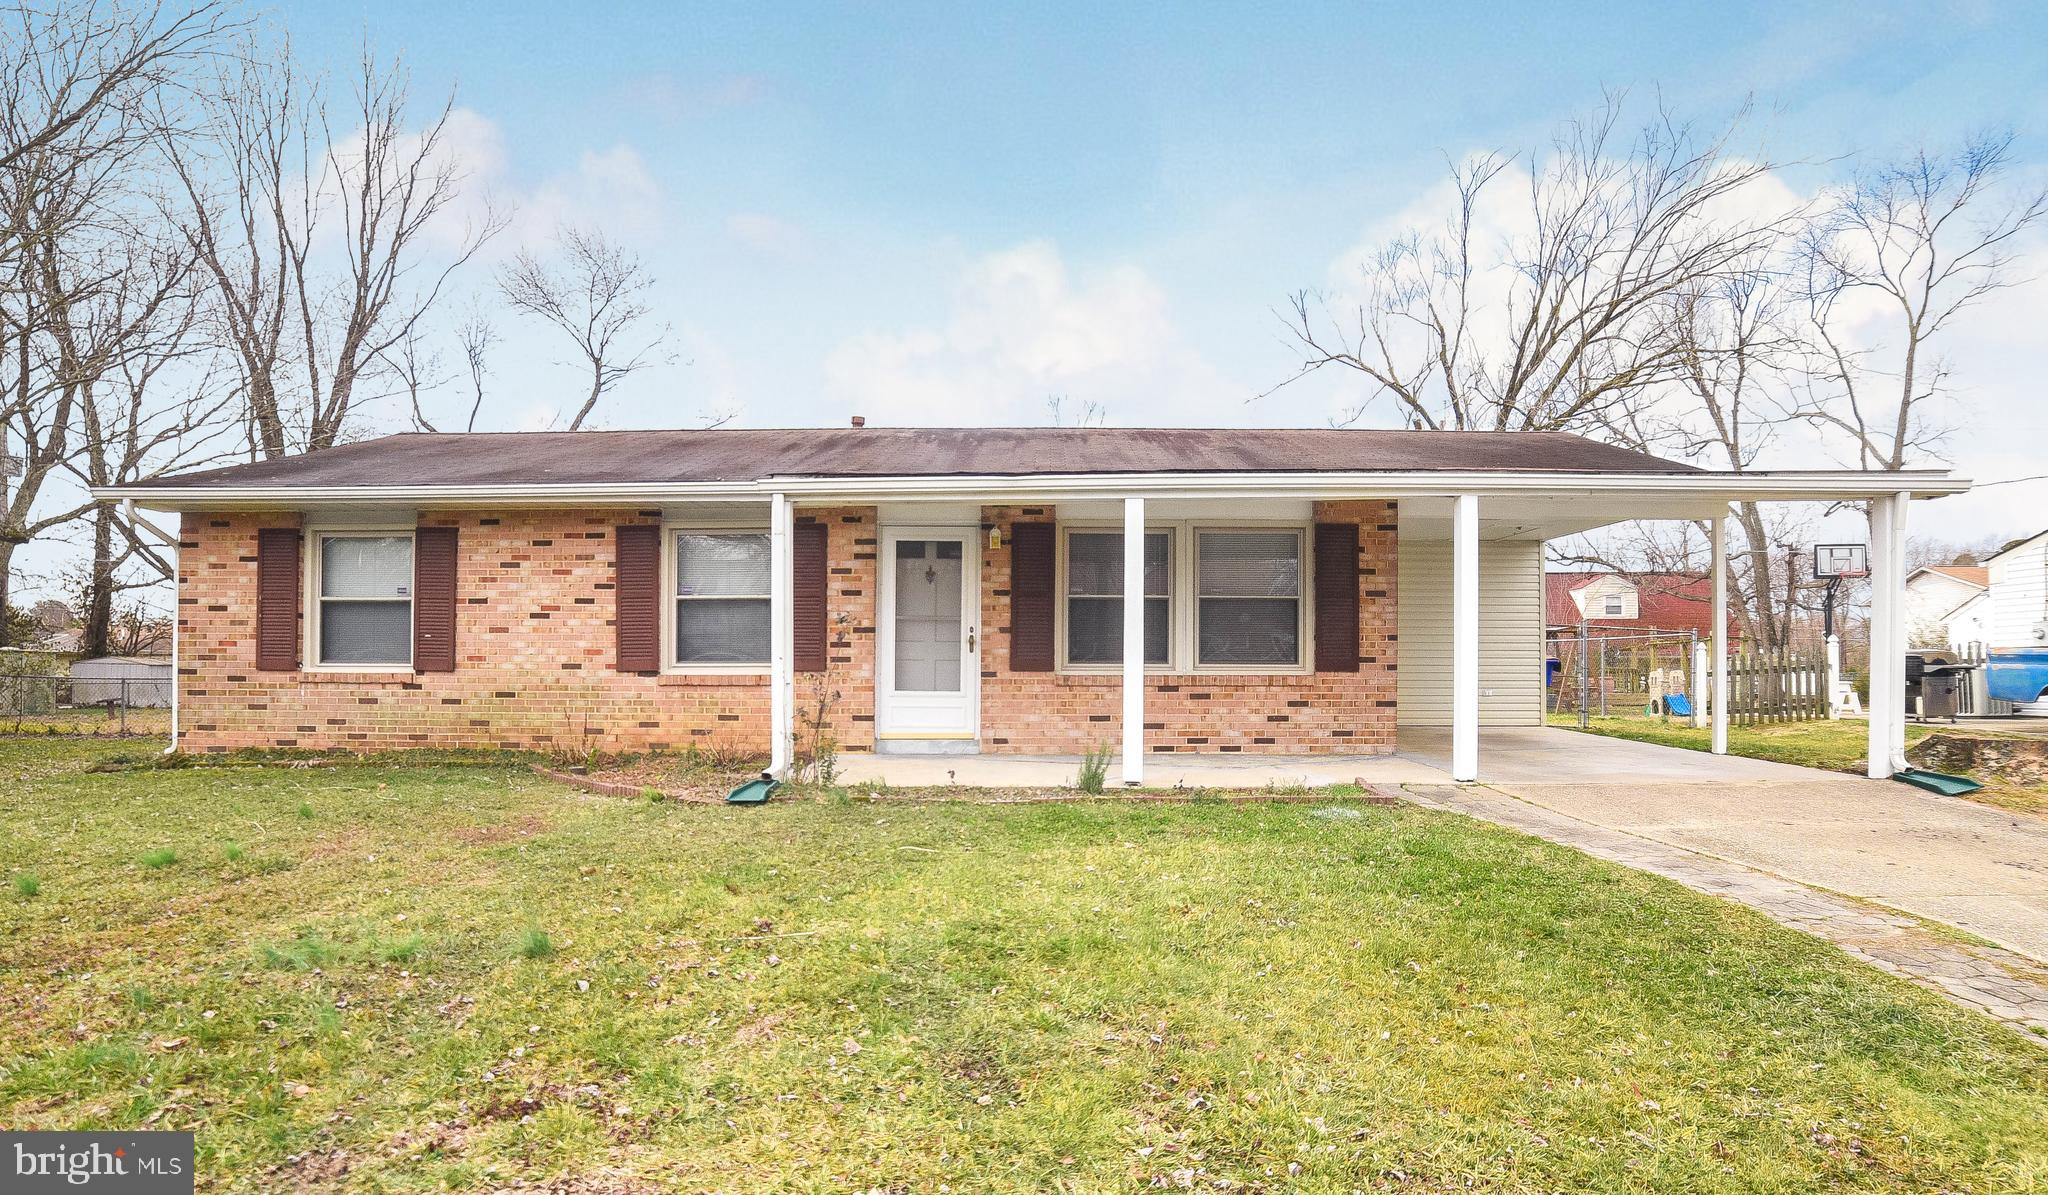 BETTER HURRY!! 3 Bedrooms....all on one level....situated on a large level lot! Room to spread out w